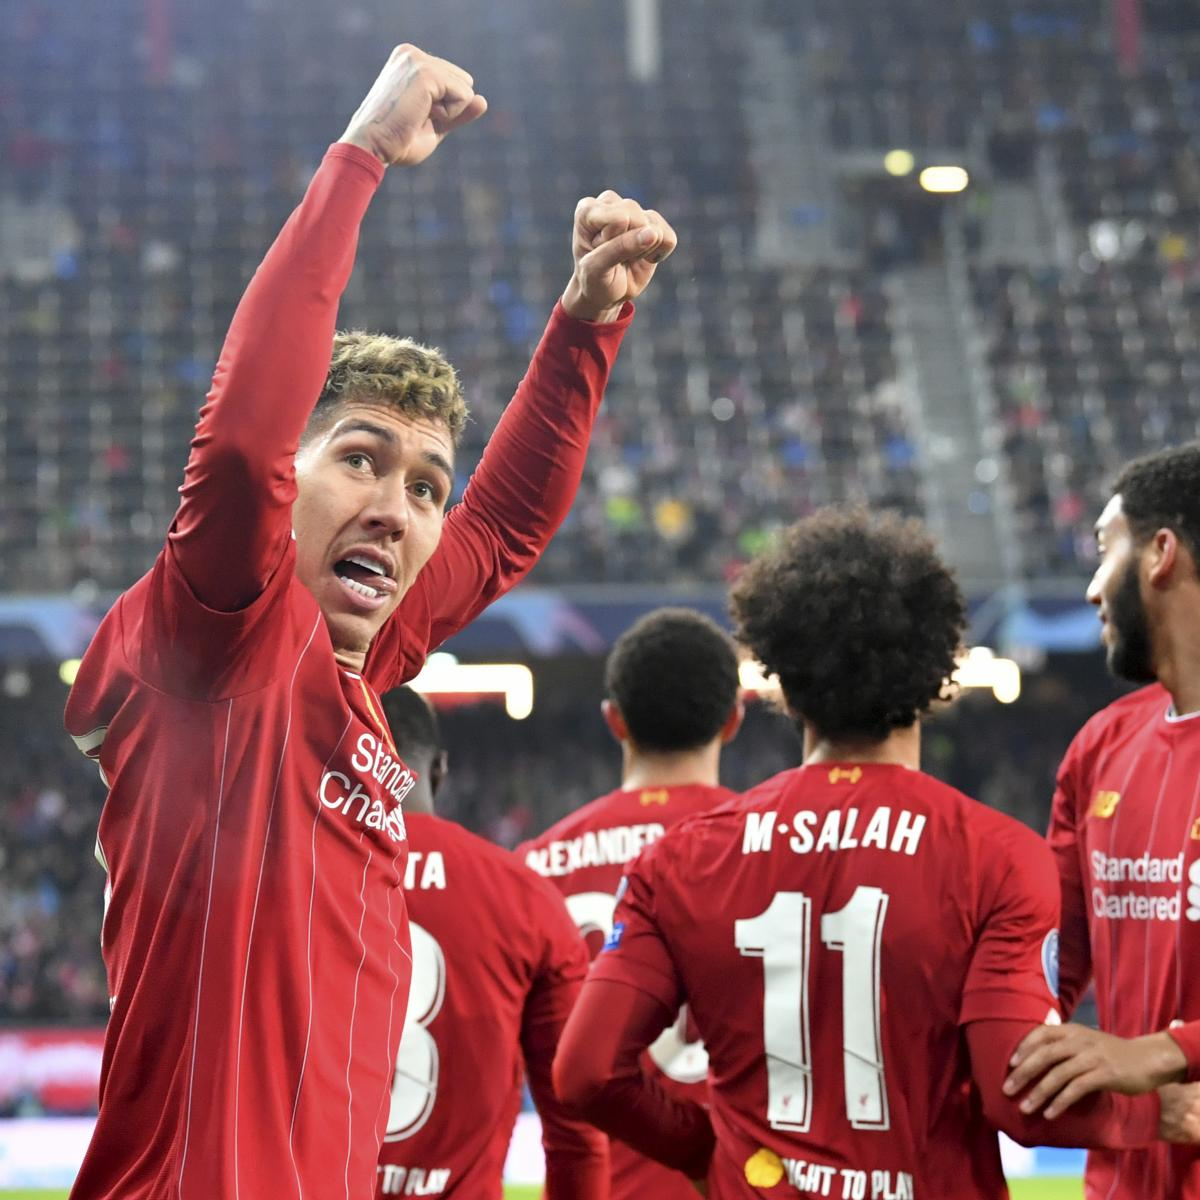 Uefa Champions And Europa League 2020 Round Of 16 Live Stream Preview Info Bleacher Report Latest News Videos And Highlights